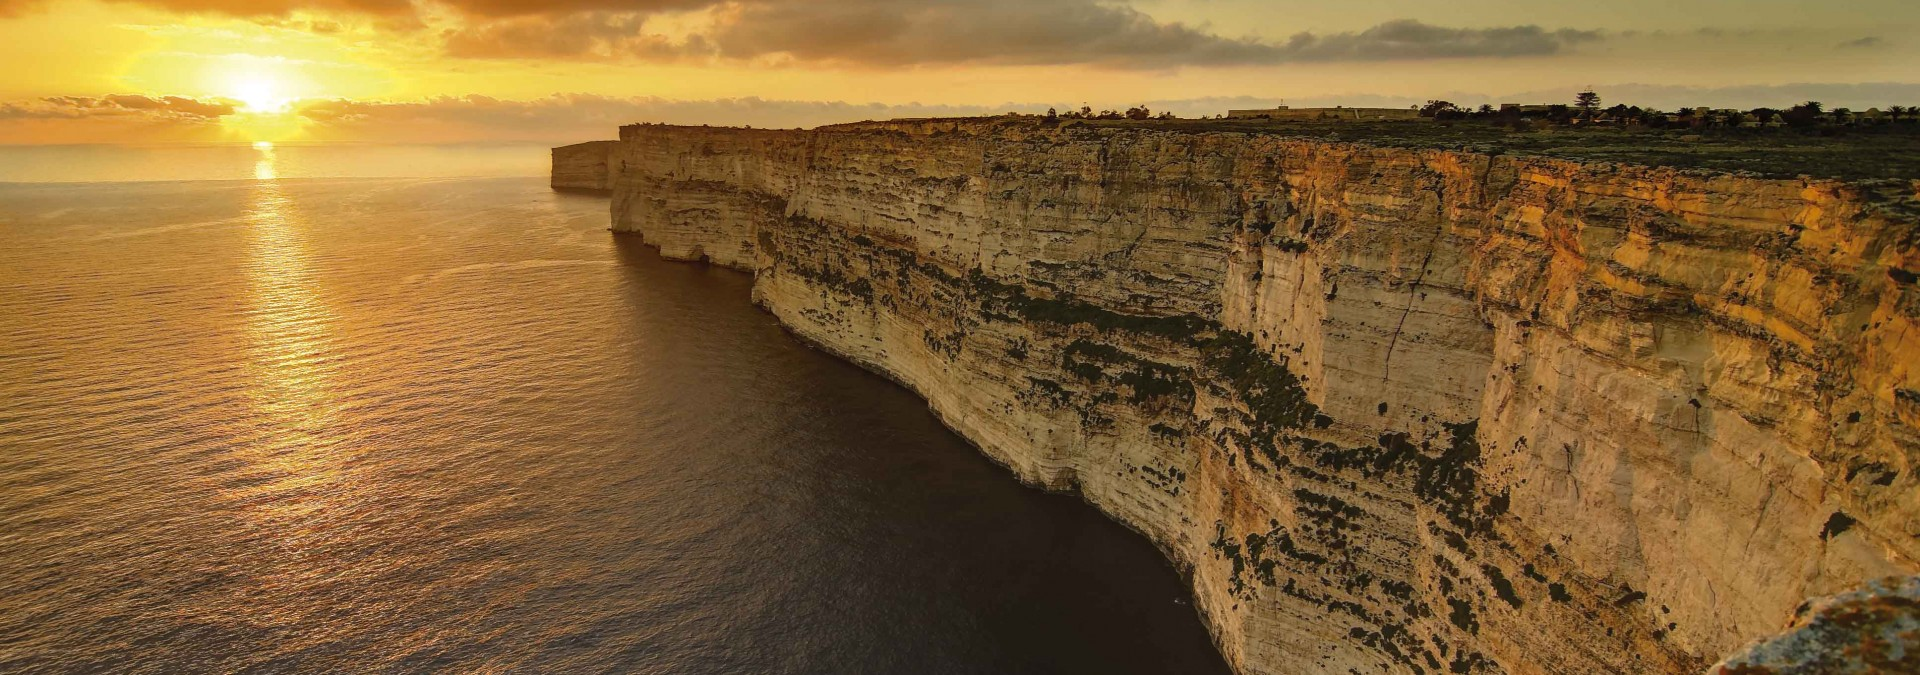 Gozo - Cliffs by Clive Vella.jpg